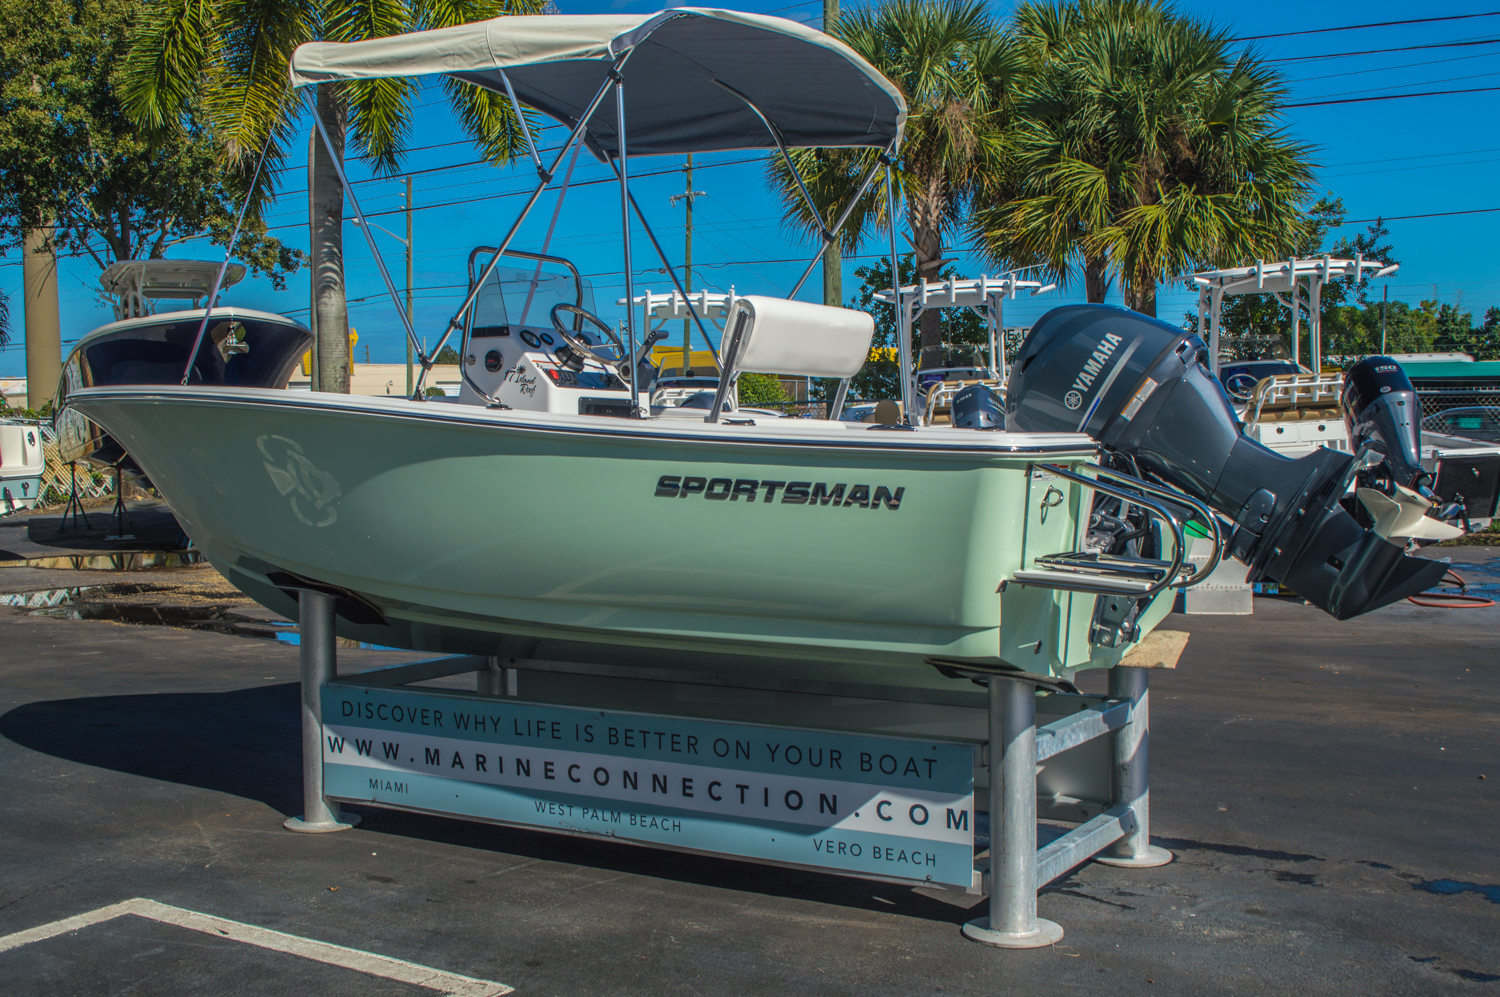 Thumbnail 5 for New 2016 Sportsman 17 Island Reef boat for sale in West Palm Beach, FL